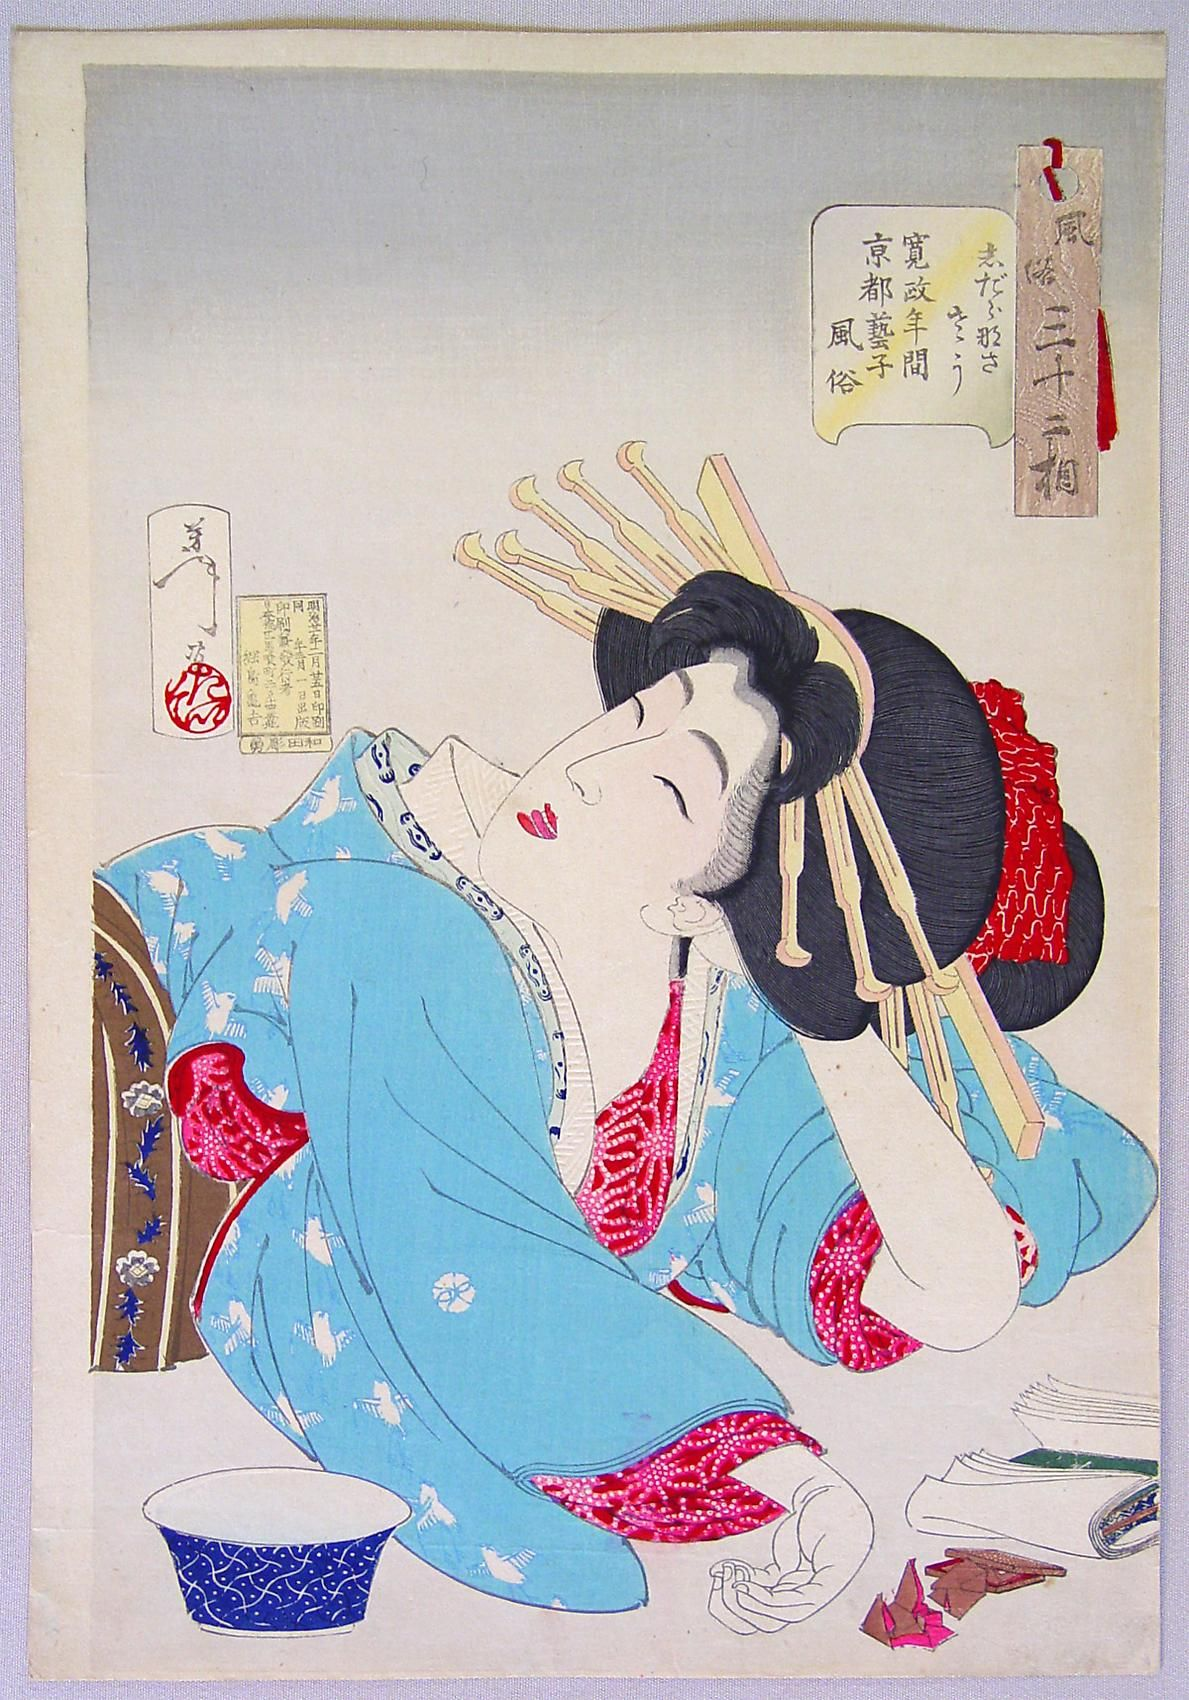 Suject: A relaxed Geisha during the Kansei Era